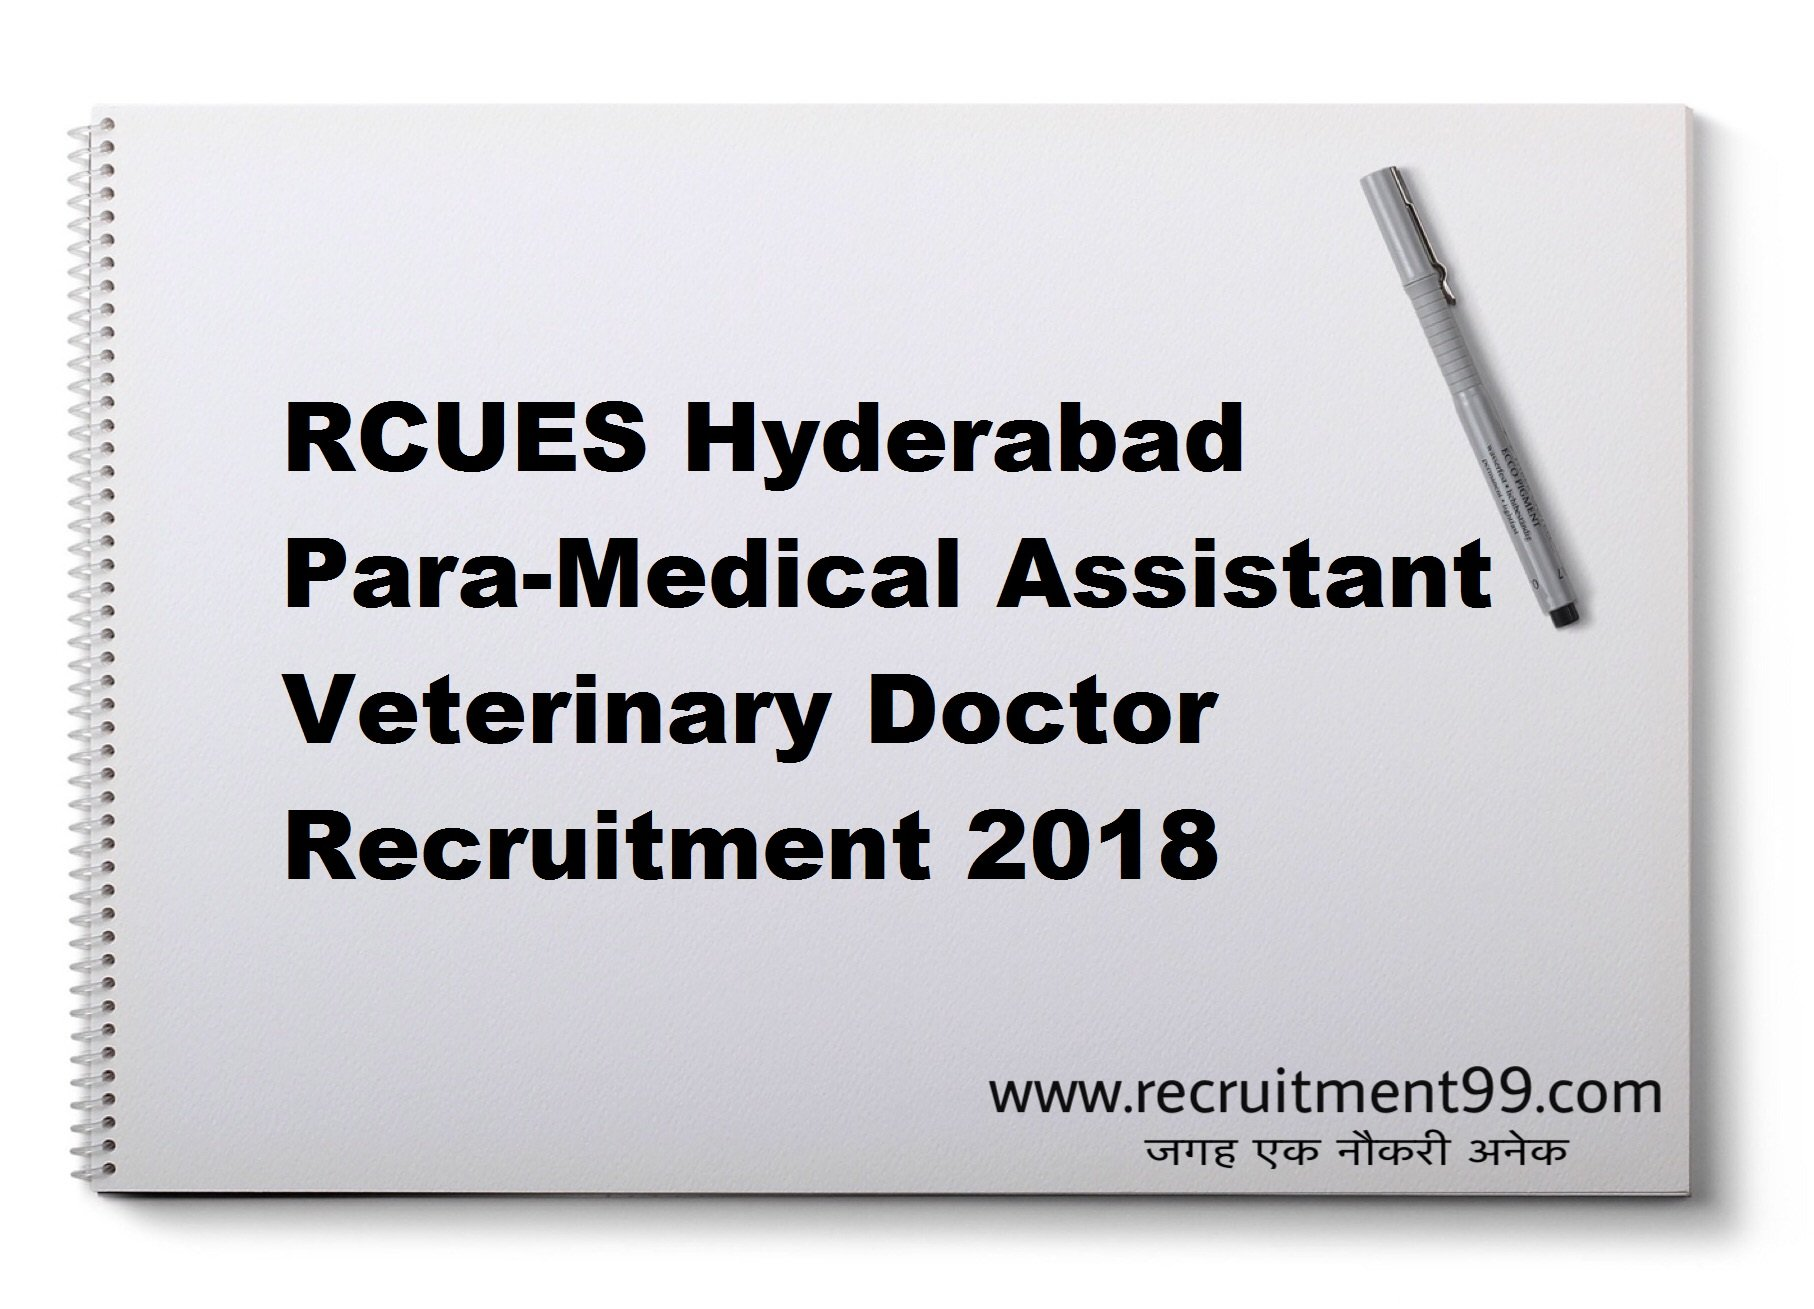 RCUES Hyderabad Para-Medical Assistant Veterinary Doctor Recruitment Hall Ticket Result 2018